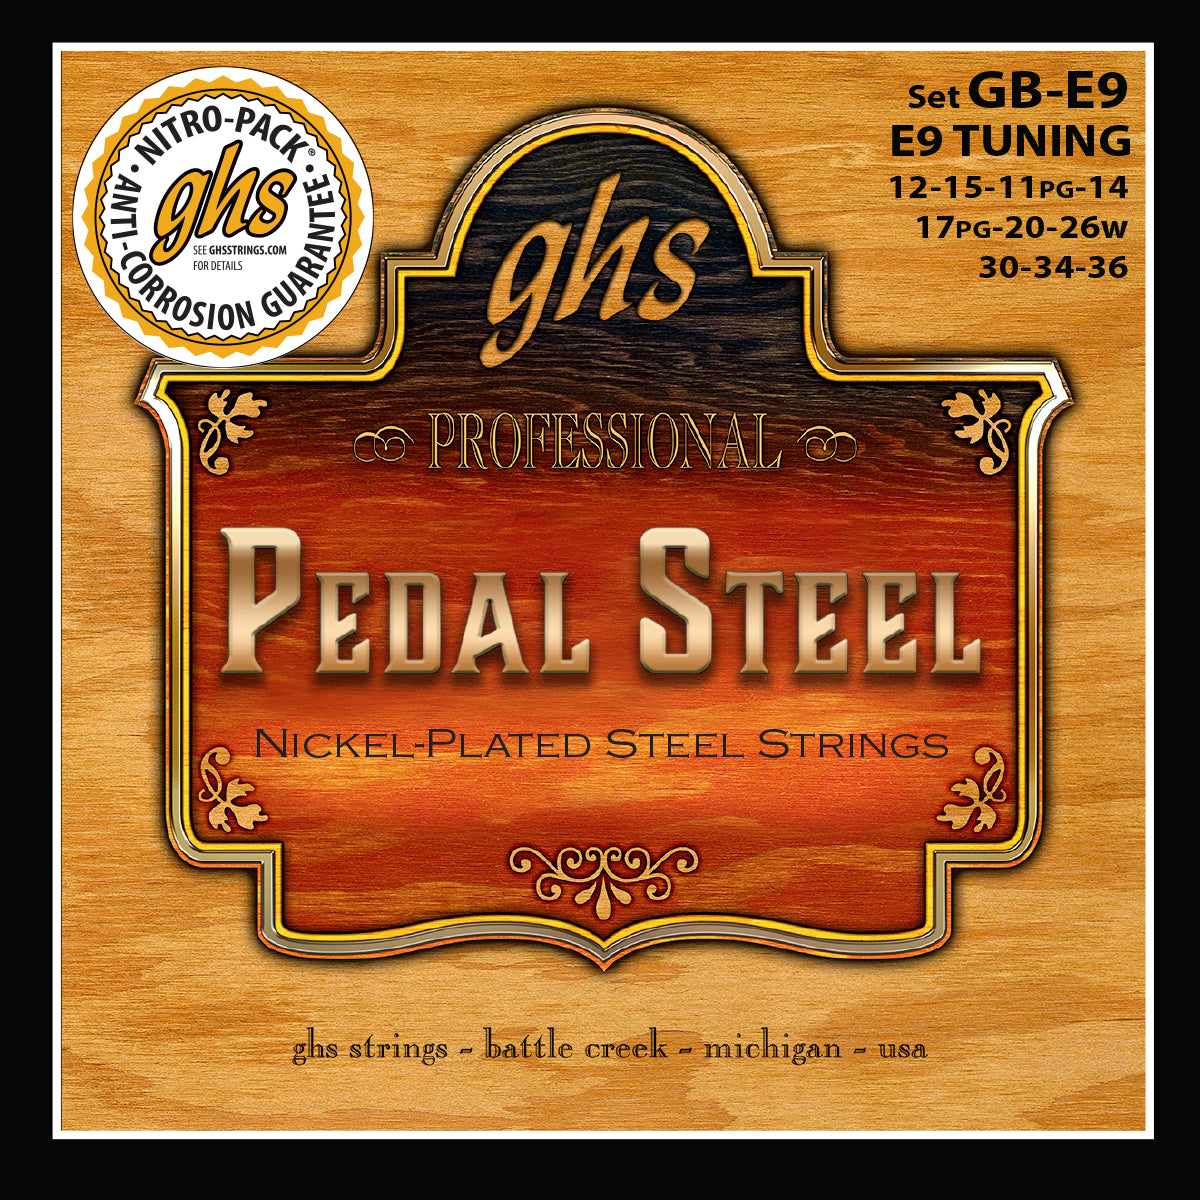 GHS E9th Tuning pedal Steel Strings